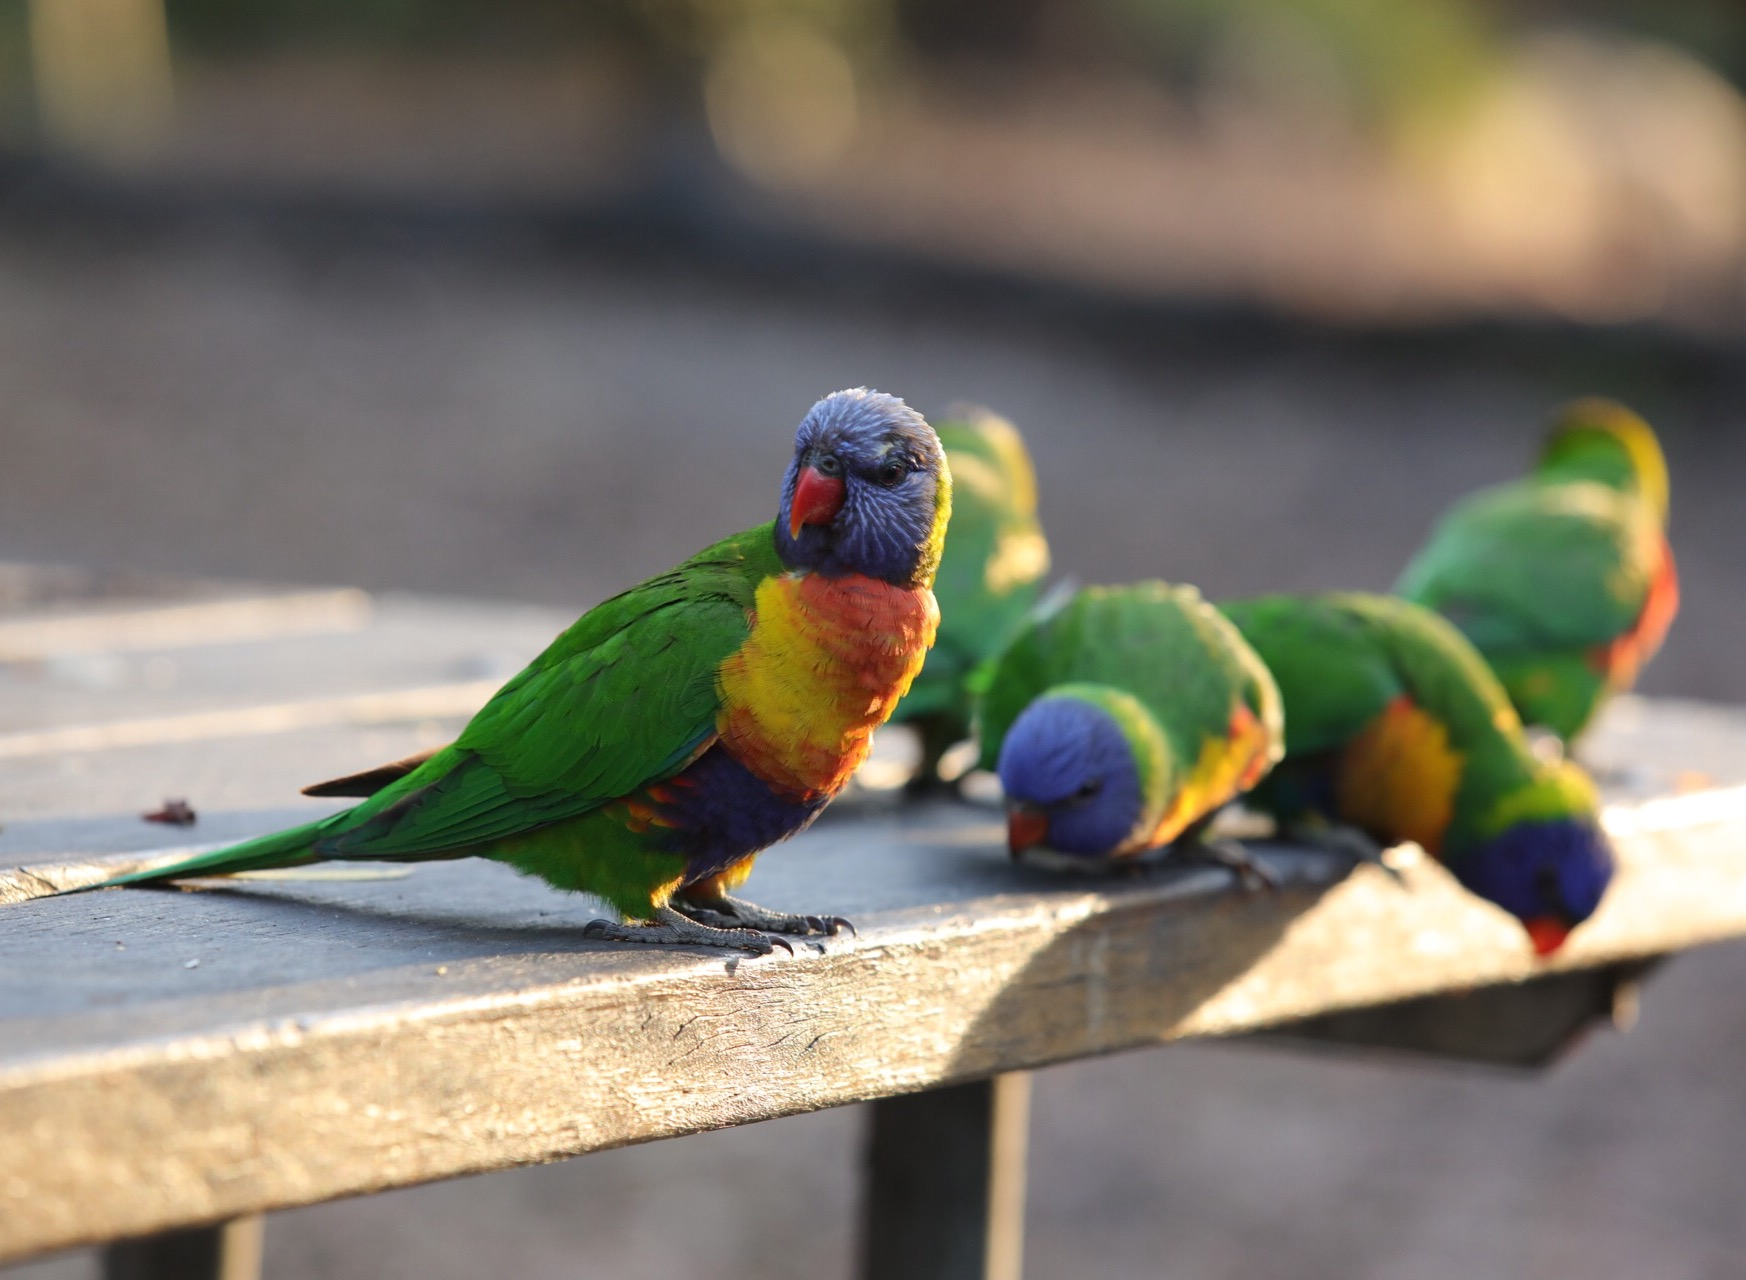 Seeing wild parrots for the first time